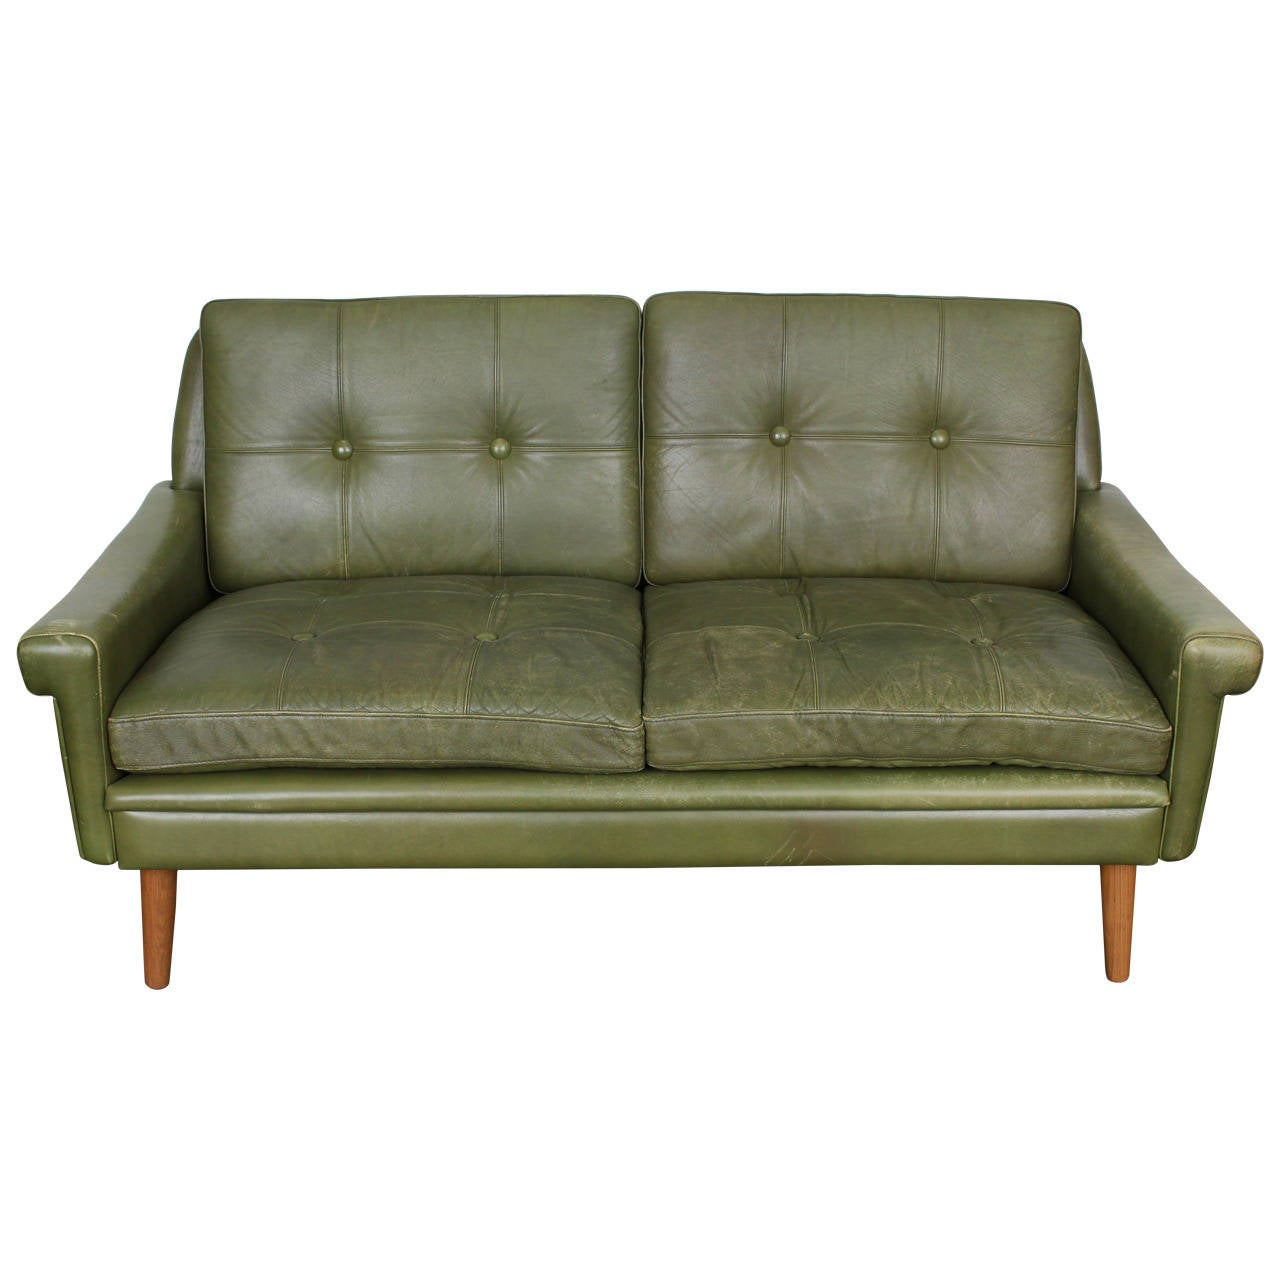 Mid Century Modern Loveseat : Mid-Century Modern Green Leather Loveseat by Skippers Mobler at ...